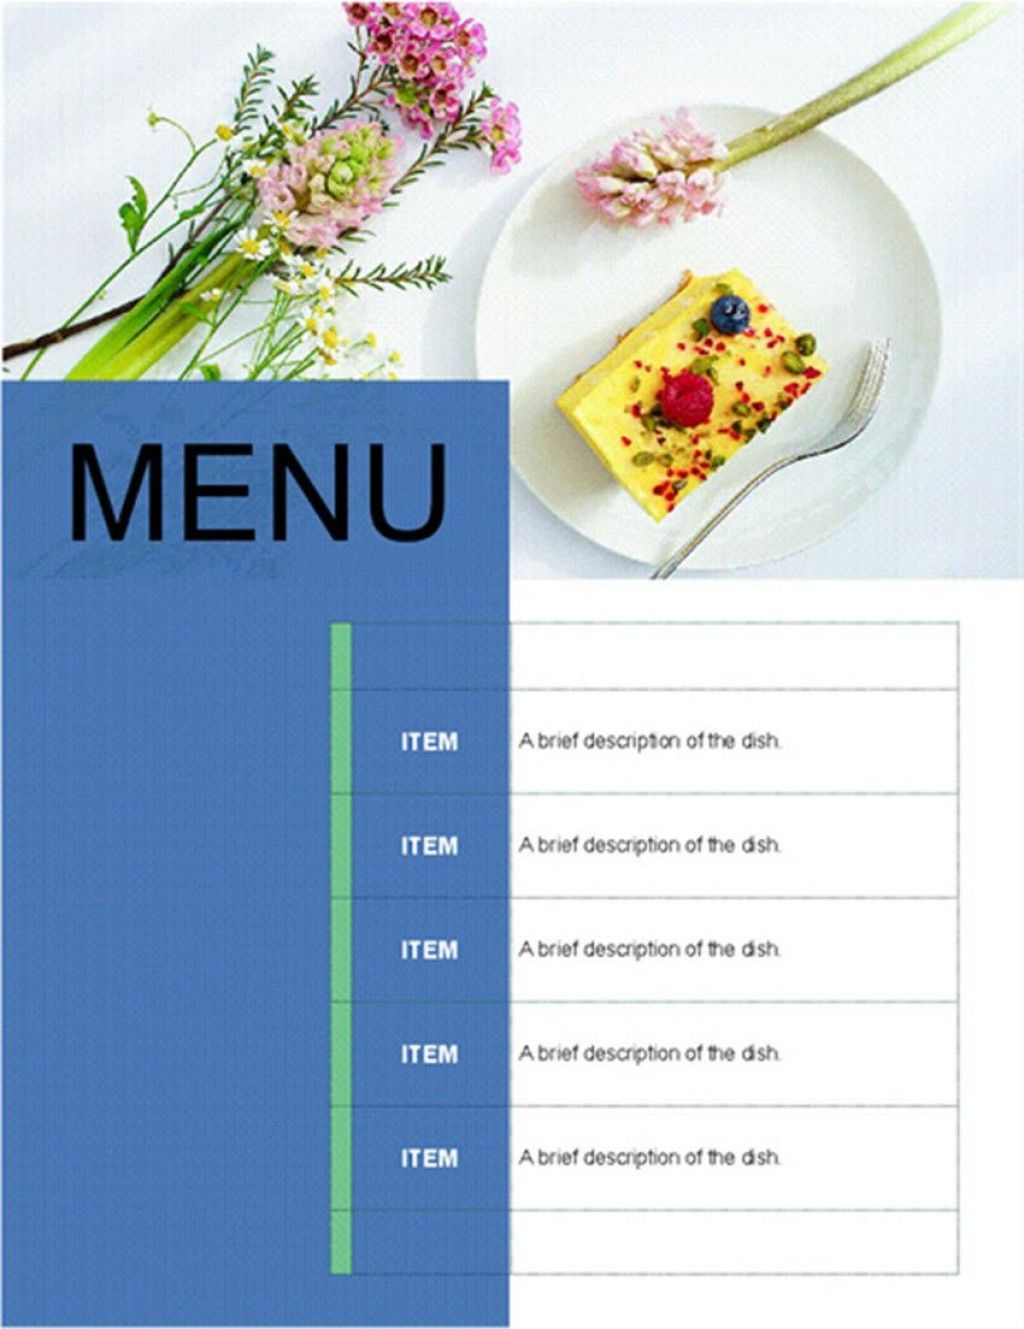 005 Dreaded Menu Template Free Download Word Concept  Dinner Party WeddingLarge